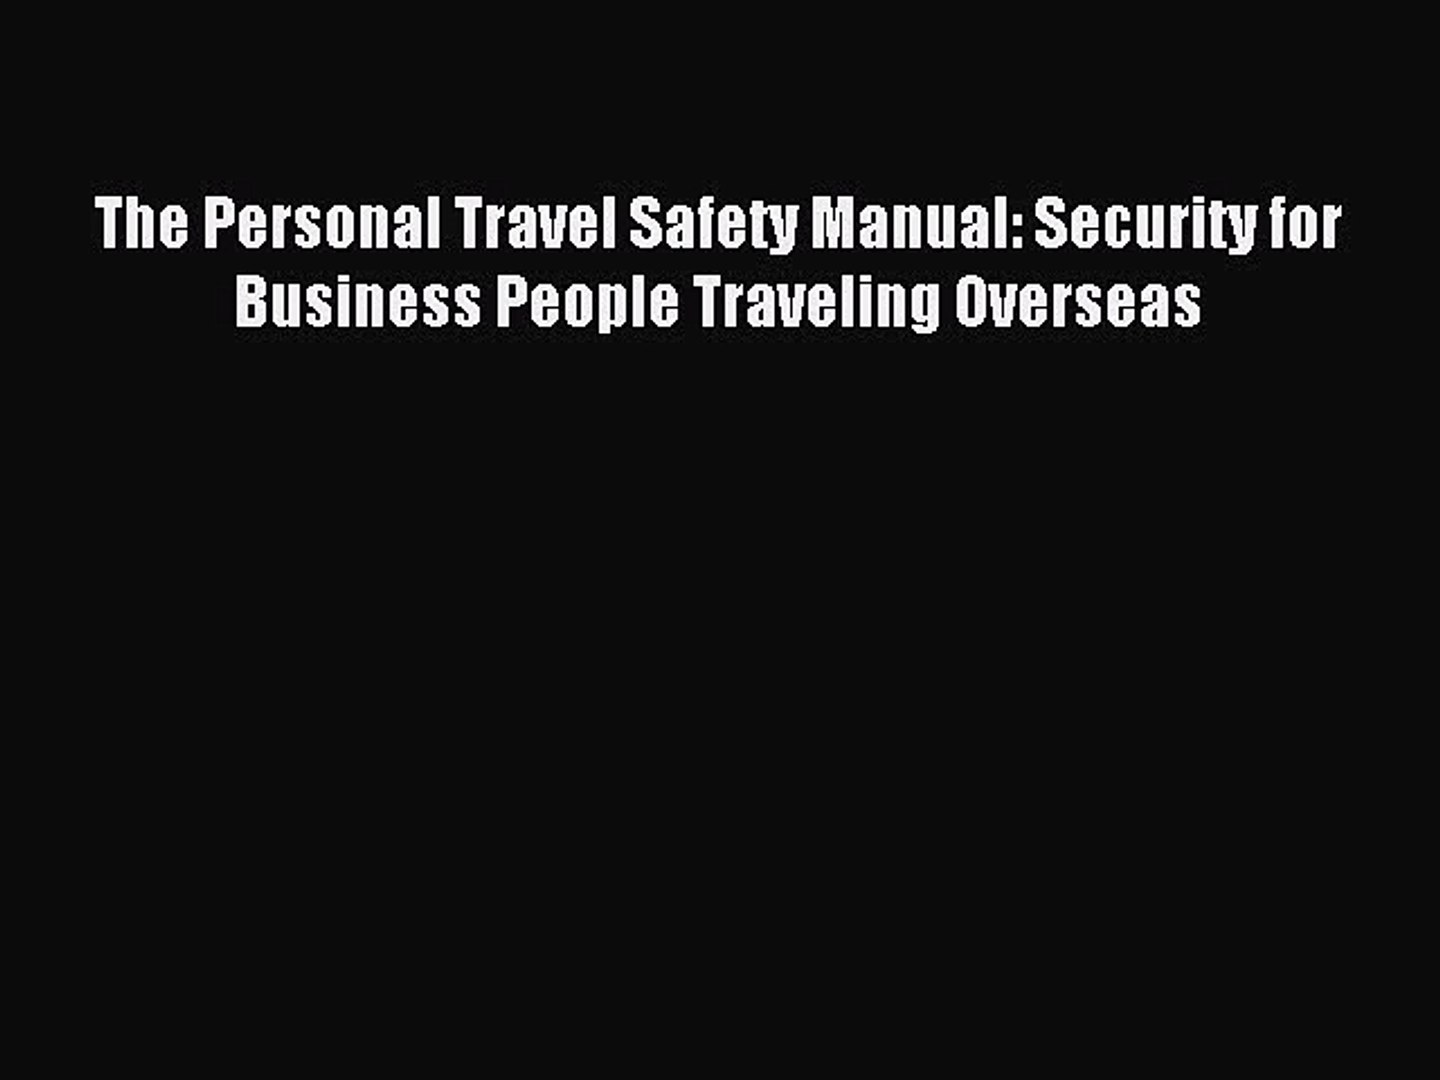 Read The Personal Travel Safety Manual: Security for Business People Traveling Overseas Ebook